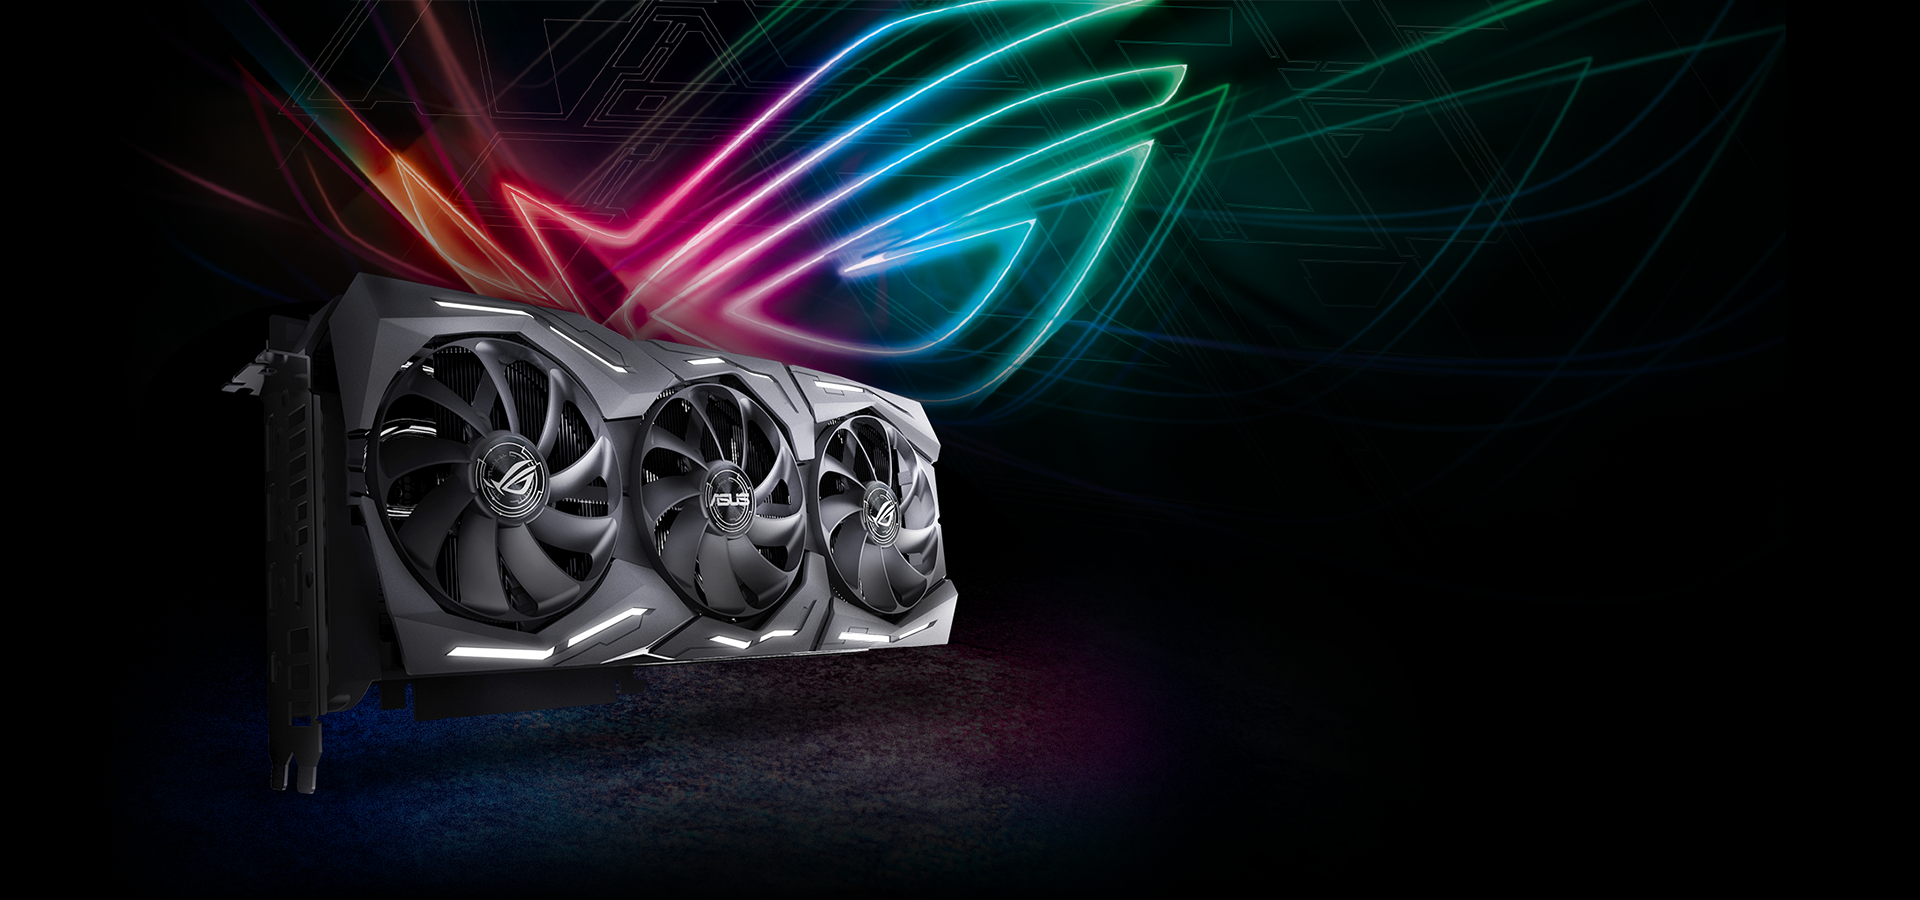 ASUS ROG STRIX GeForce RTX 2080 SUPER 8G GAMING 1